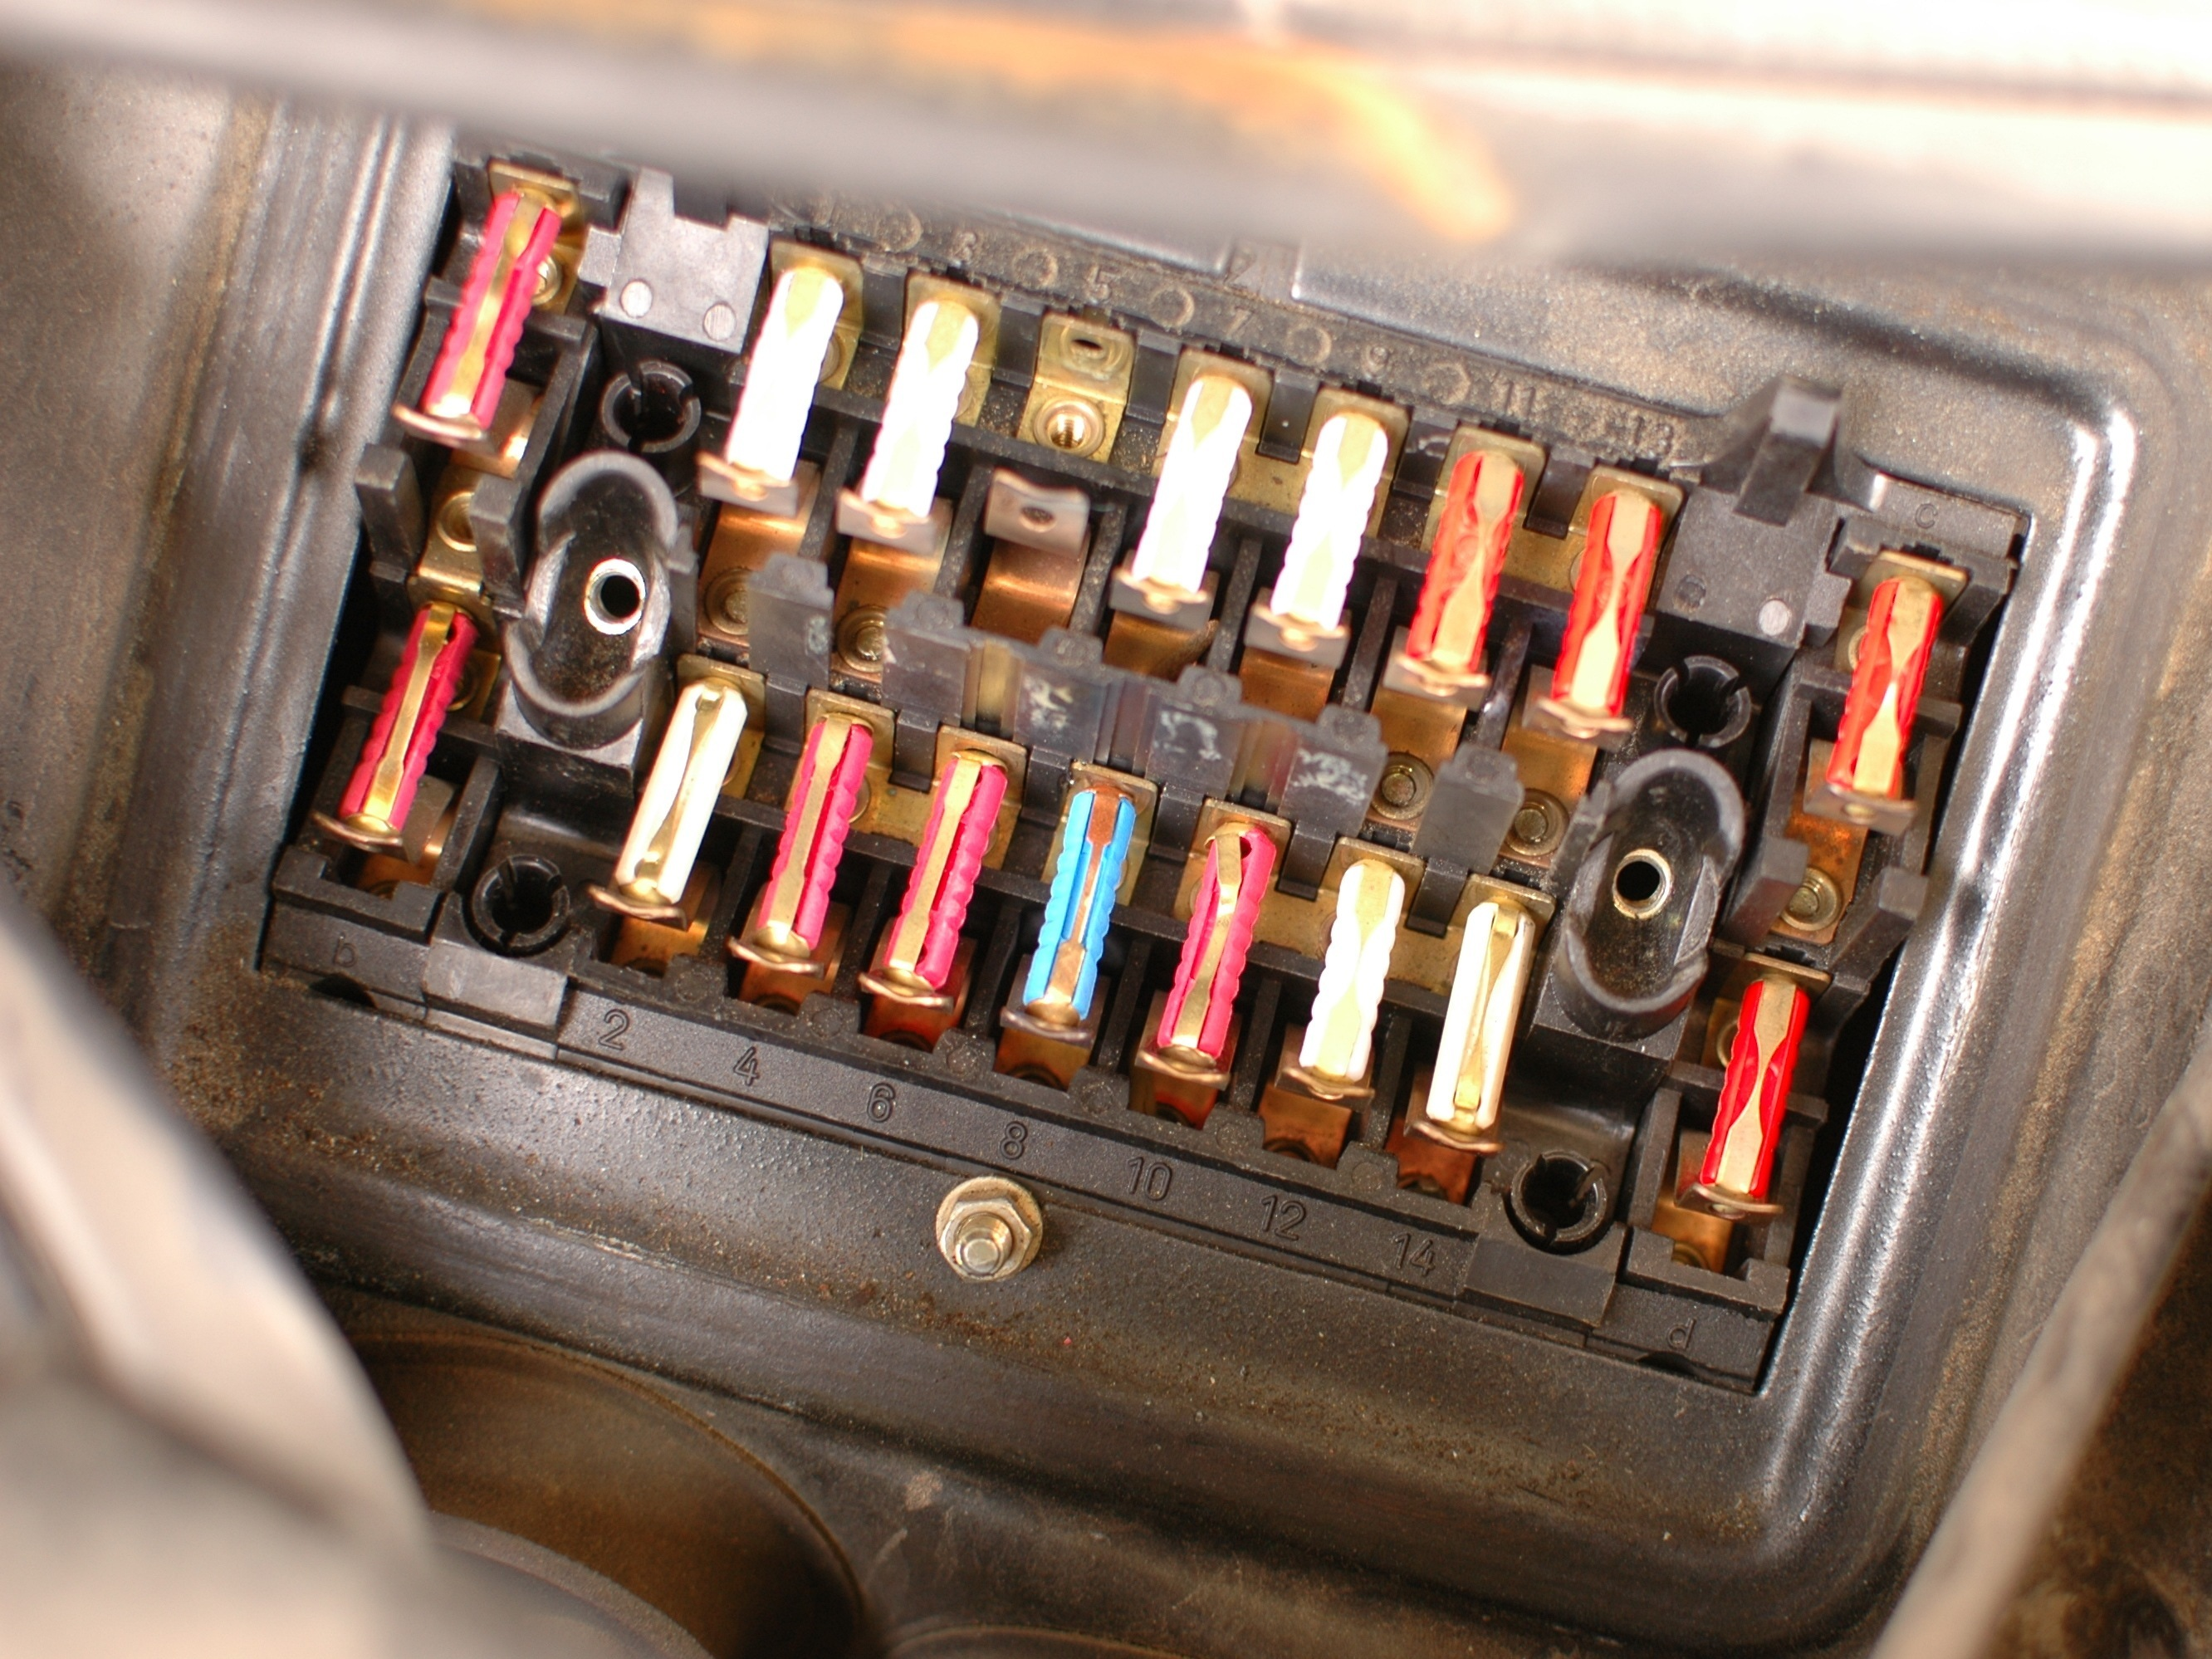 AfYAfmoCaMTVU2ap how to check mercedes w123 fuses ifixit 1978 Mercedes 450SEL at mr168.co